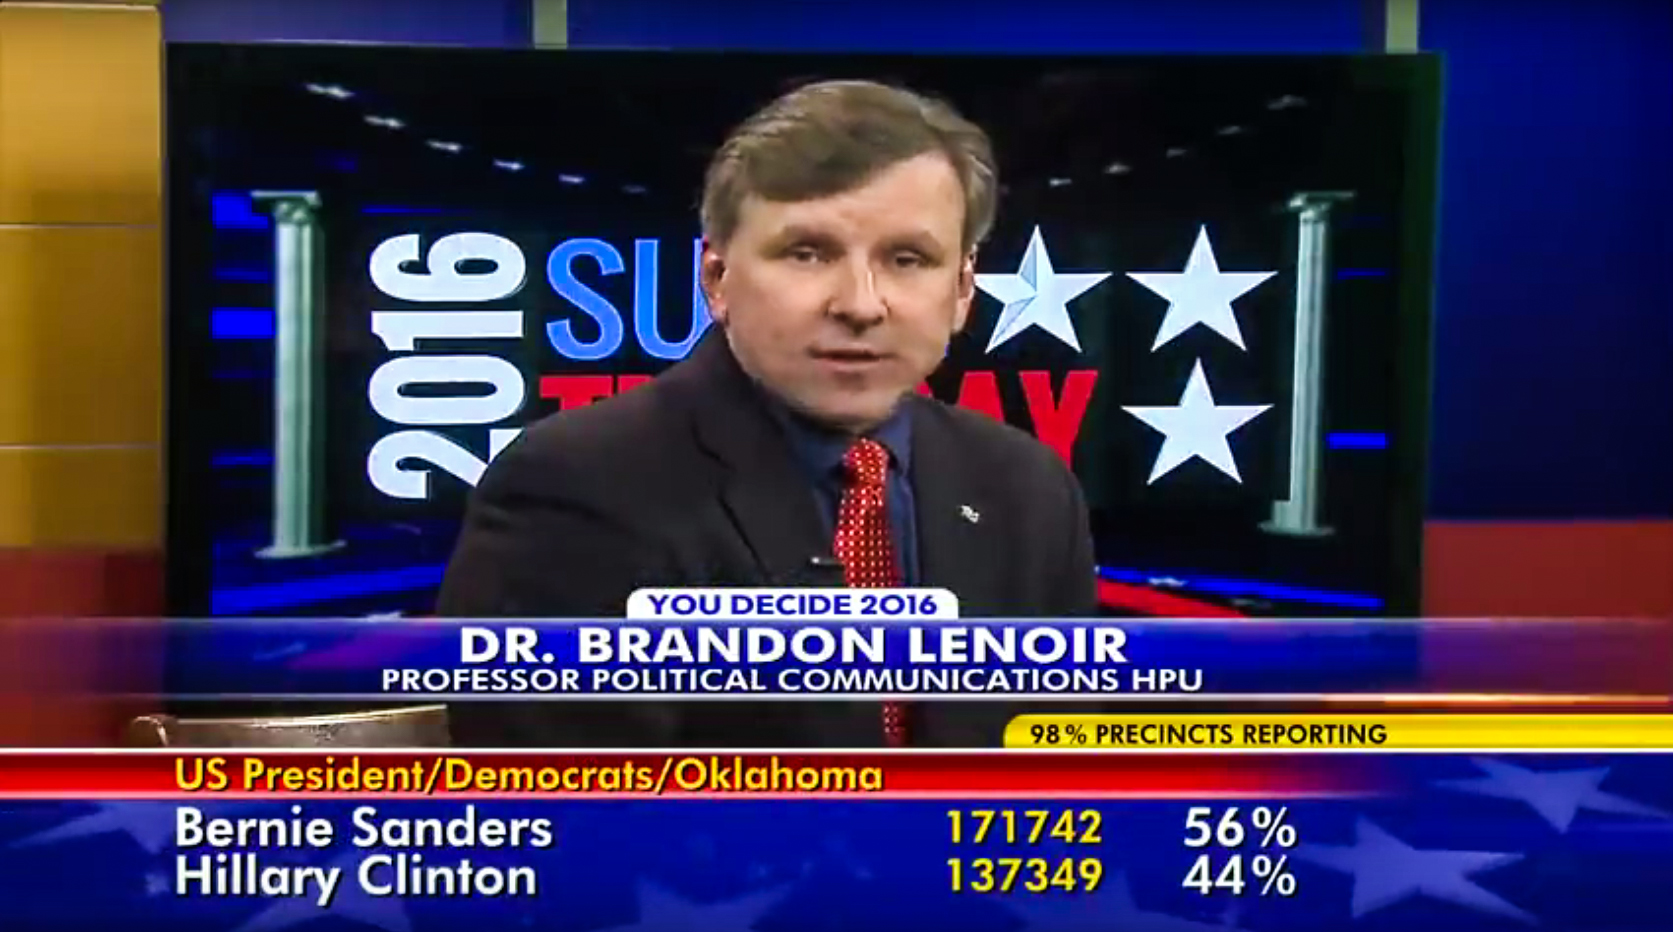 Political communication professor Brandon Lenoir weighed in on Super Tuesday results on Fox 8 WGHP.